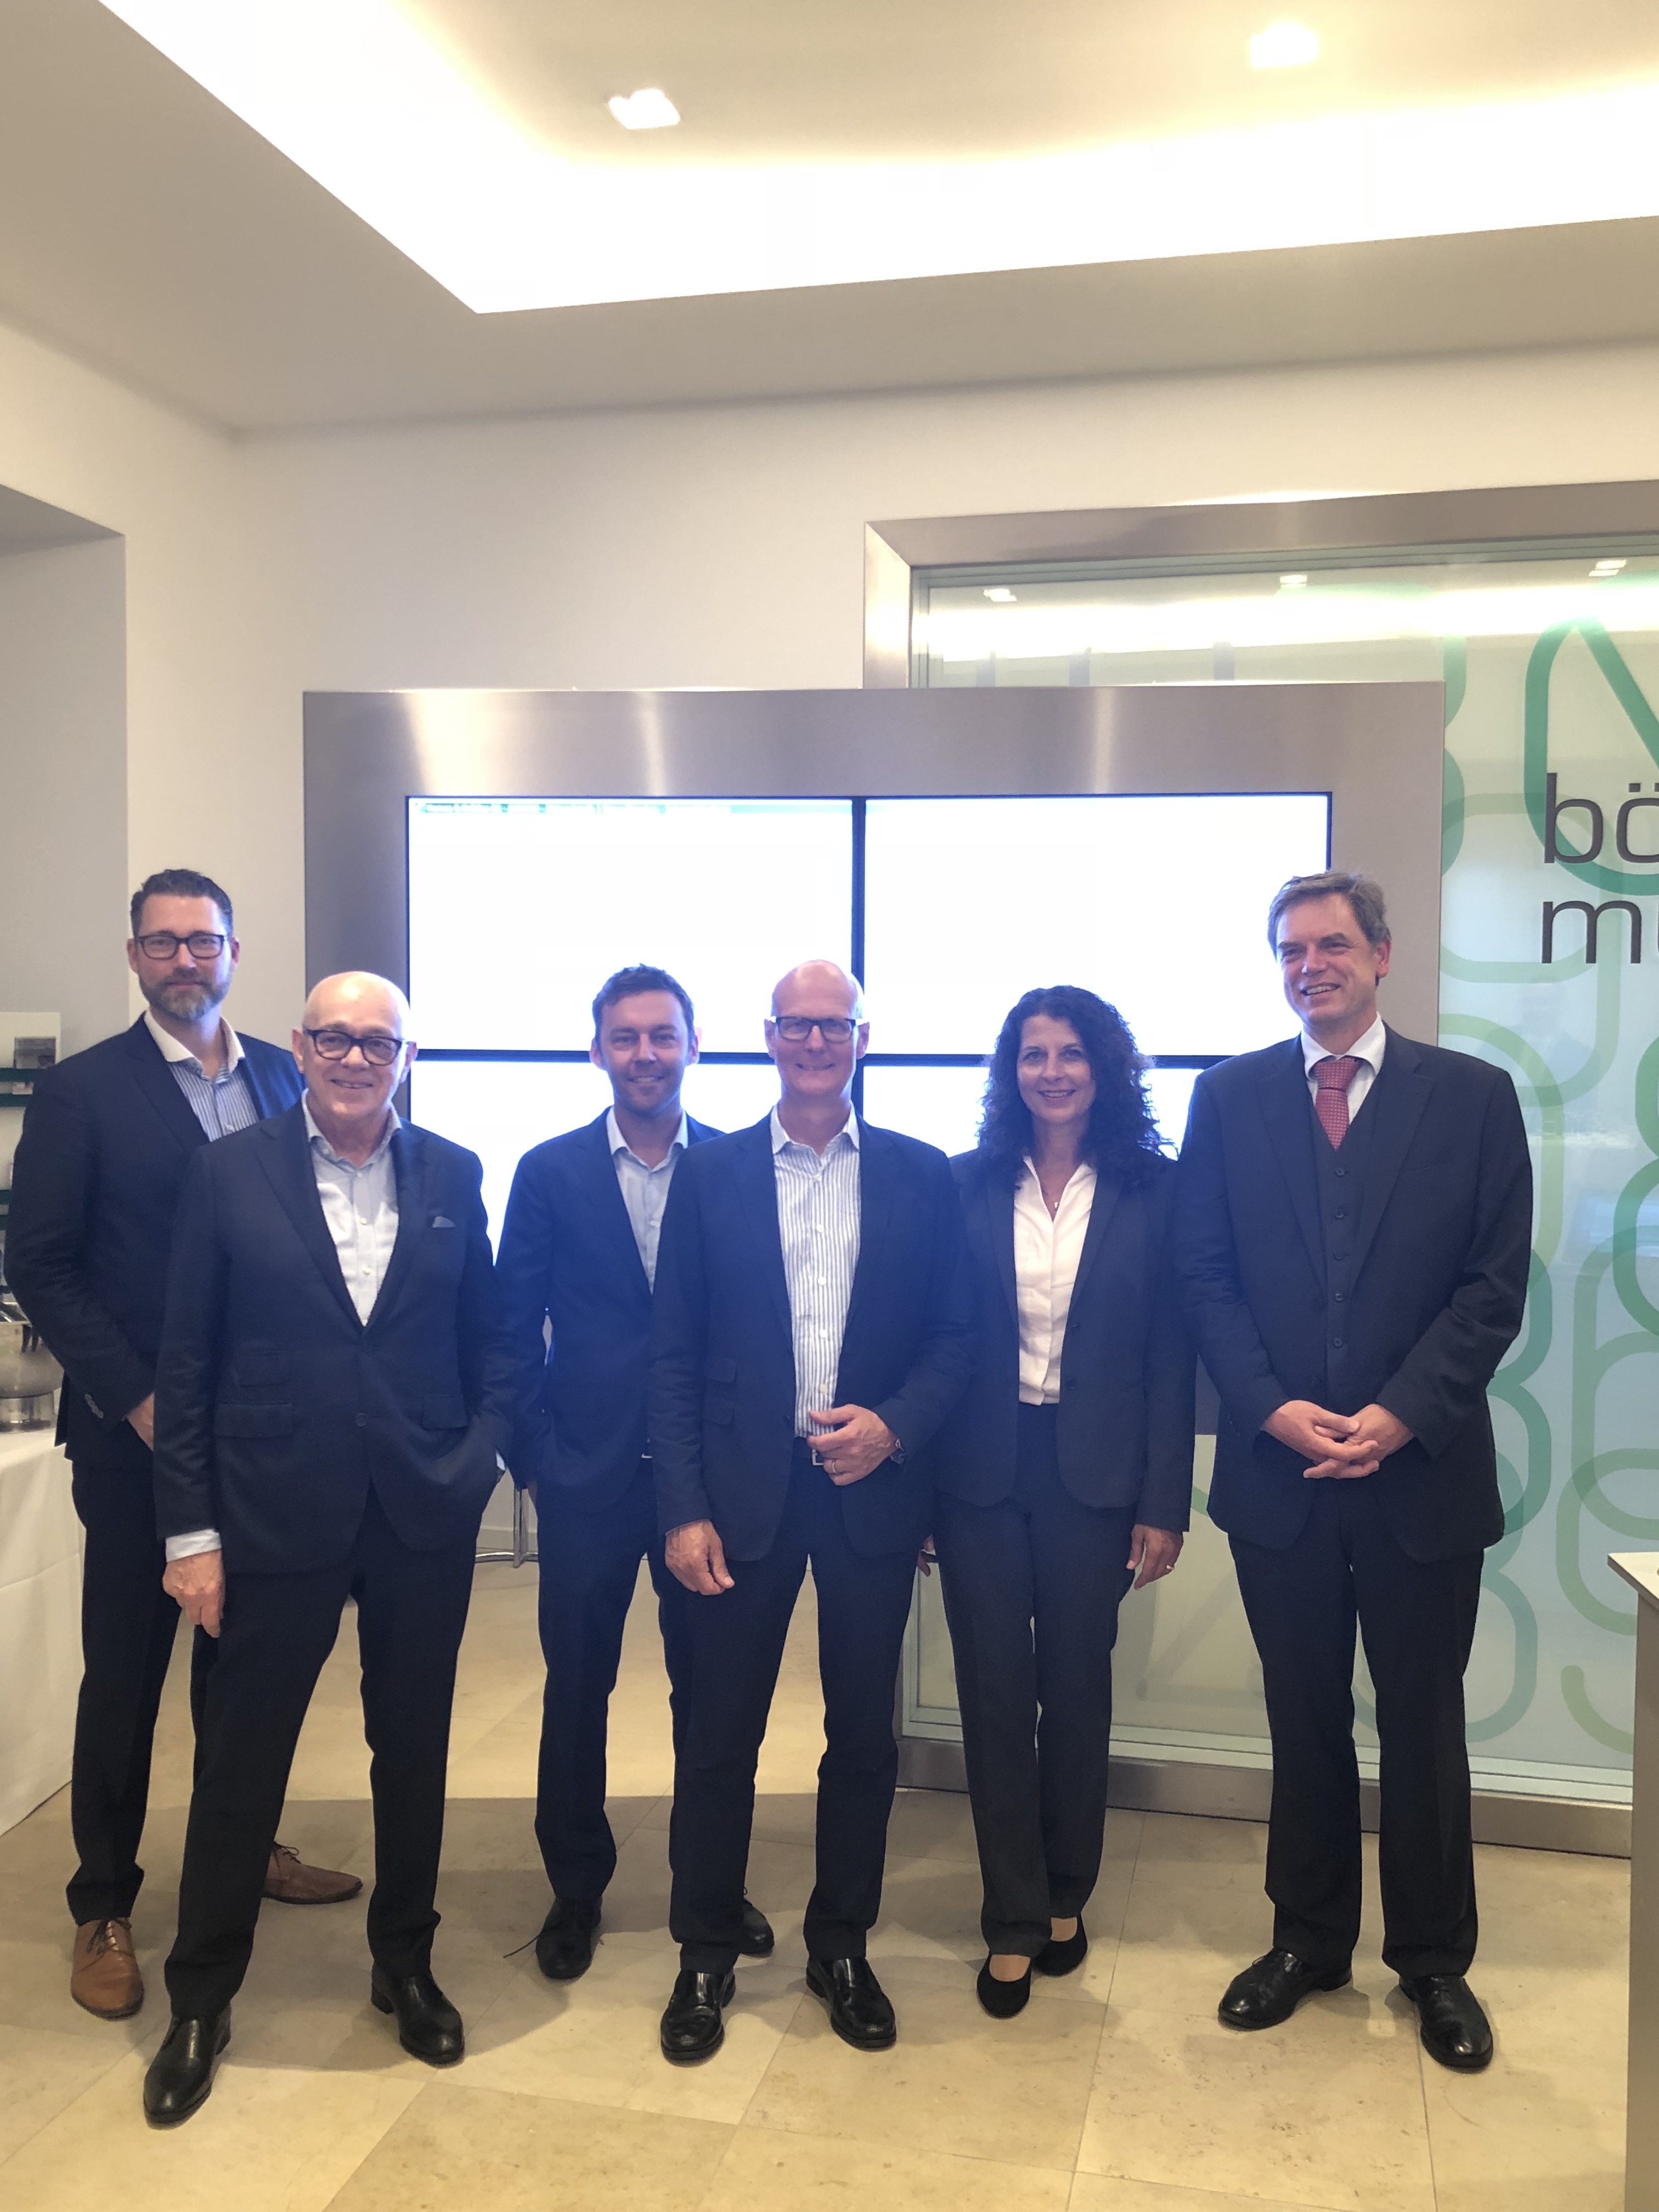 Homes & Holiday AG with a successful debut on the Munich Stock Exchange – since 10th July also available on Xetra